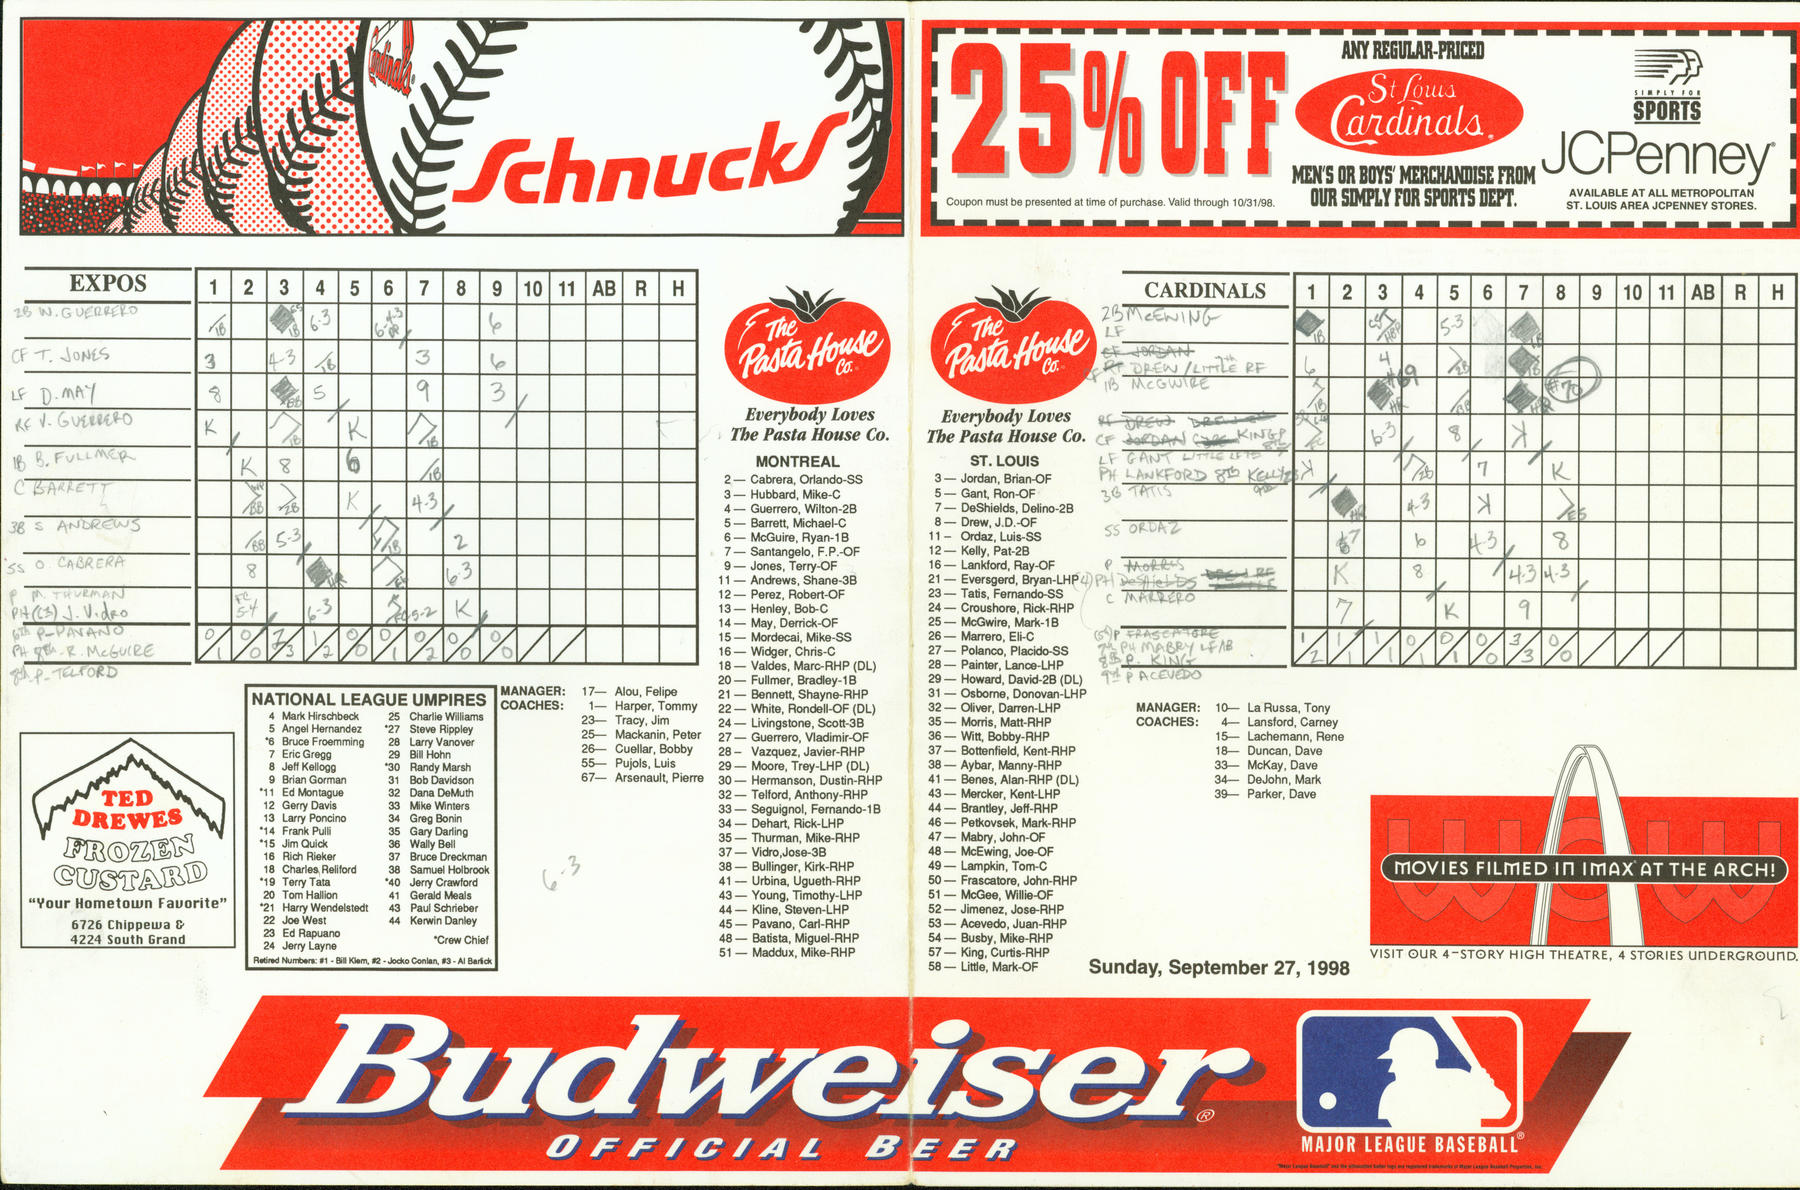 1998 St. Louis Cardinals scorecard vs the Montreal Expos - Mark McGwire's 69th and 70th home runs of season. - BL-3904-2000 (National Baseball Hall of Fame Library)